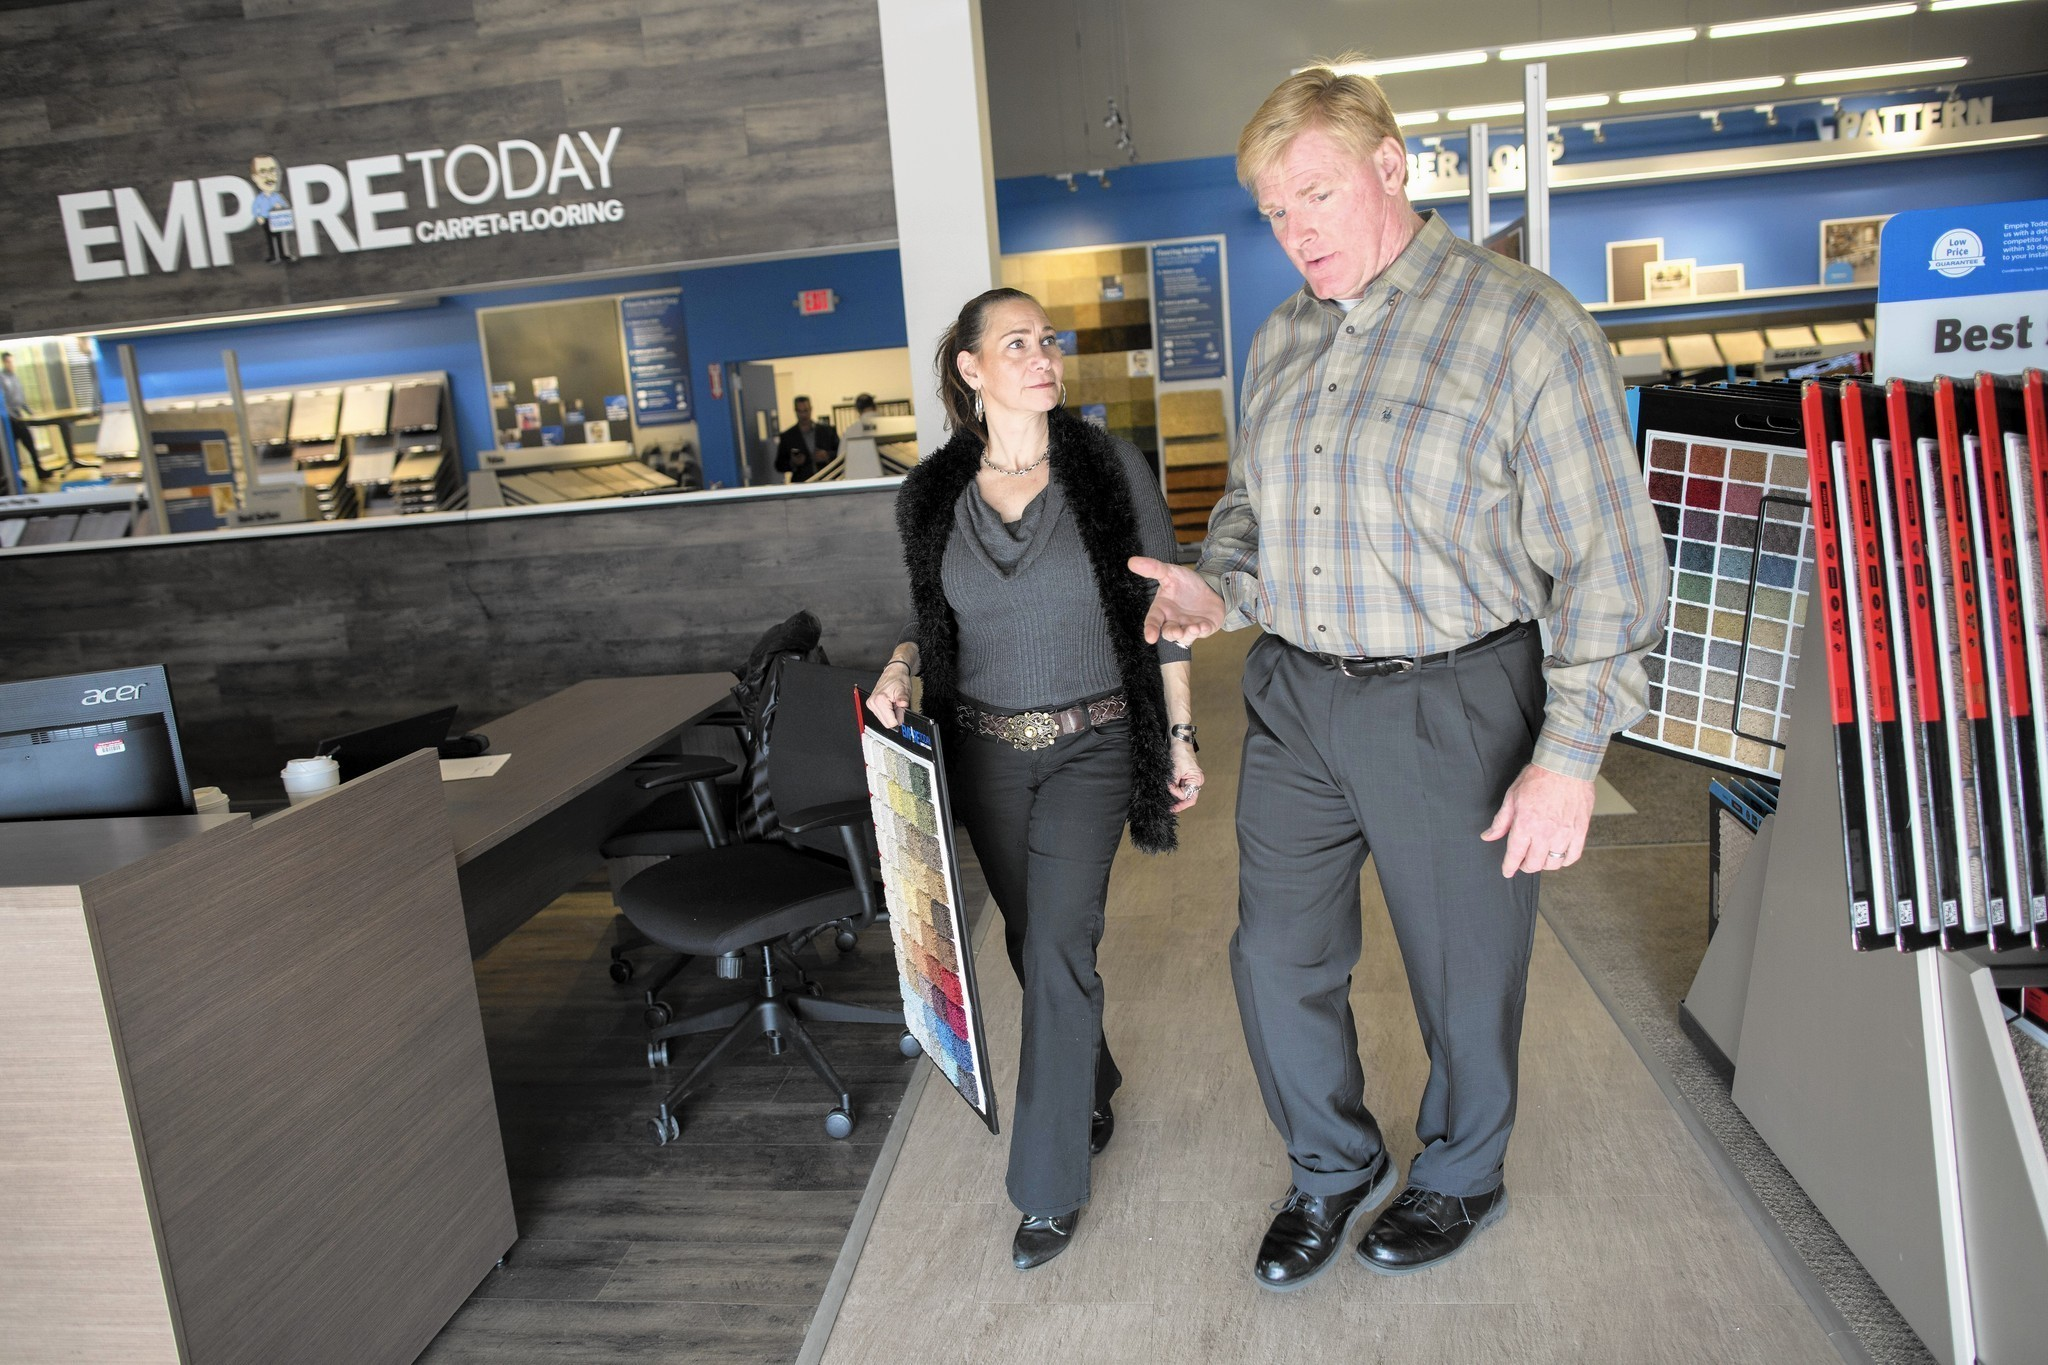 flooring retailer empire today to open first retail stores chicago tribune